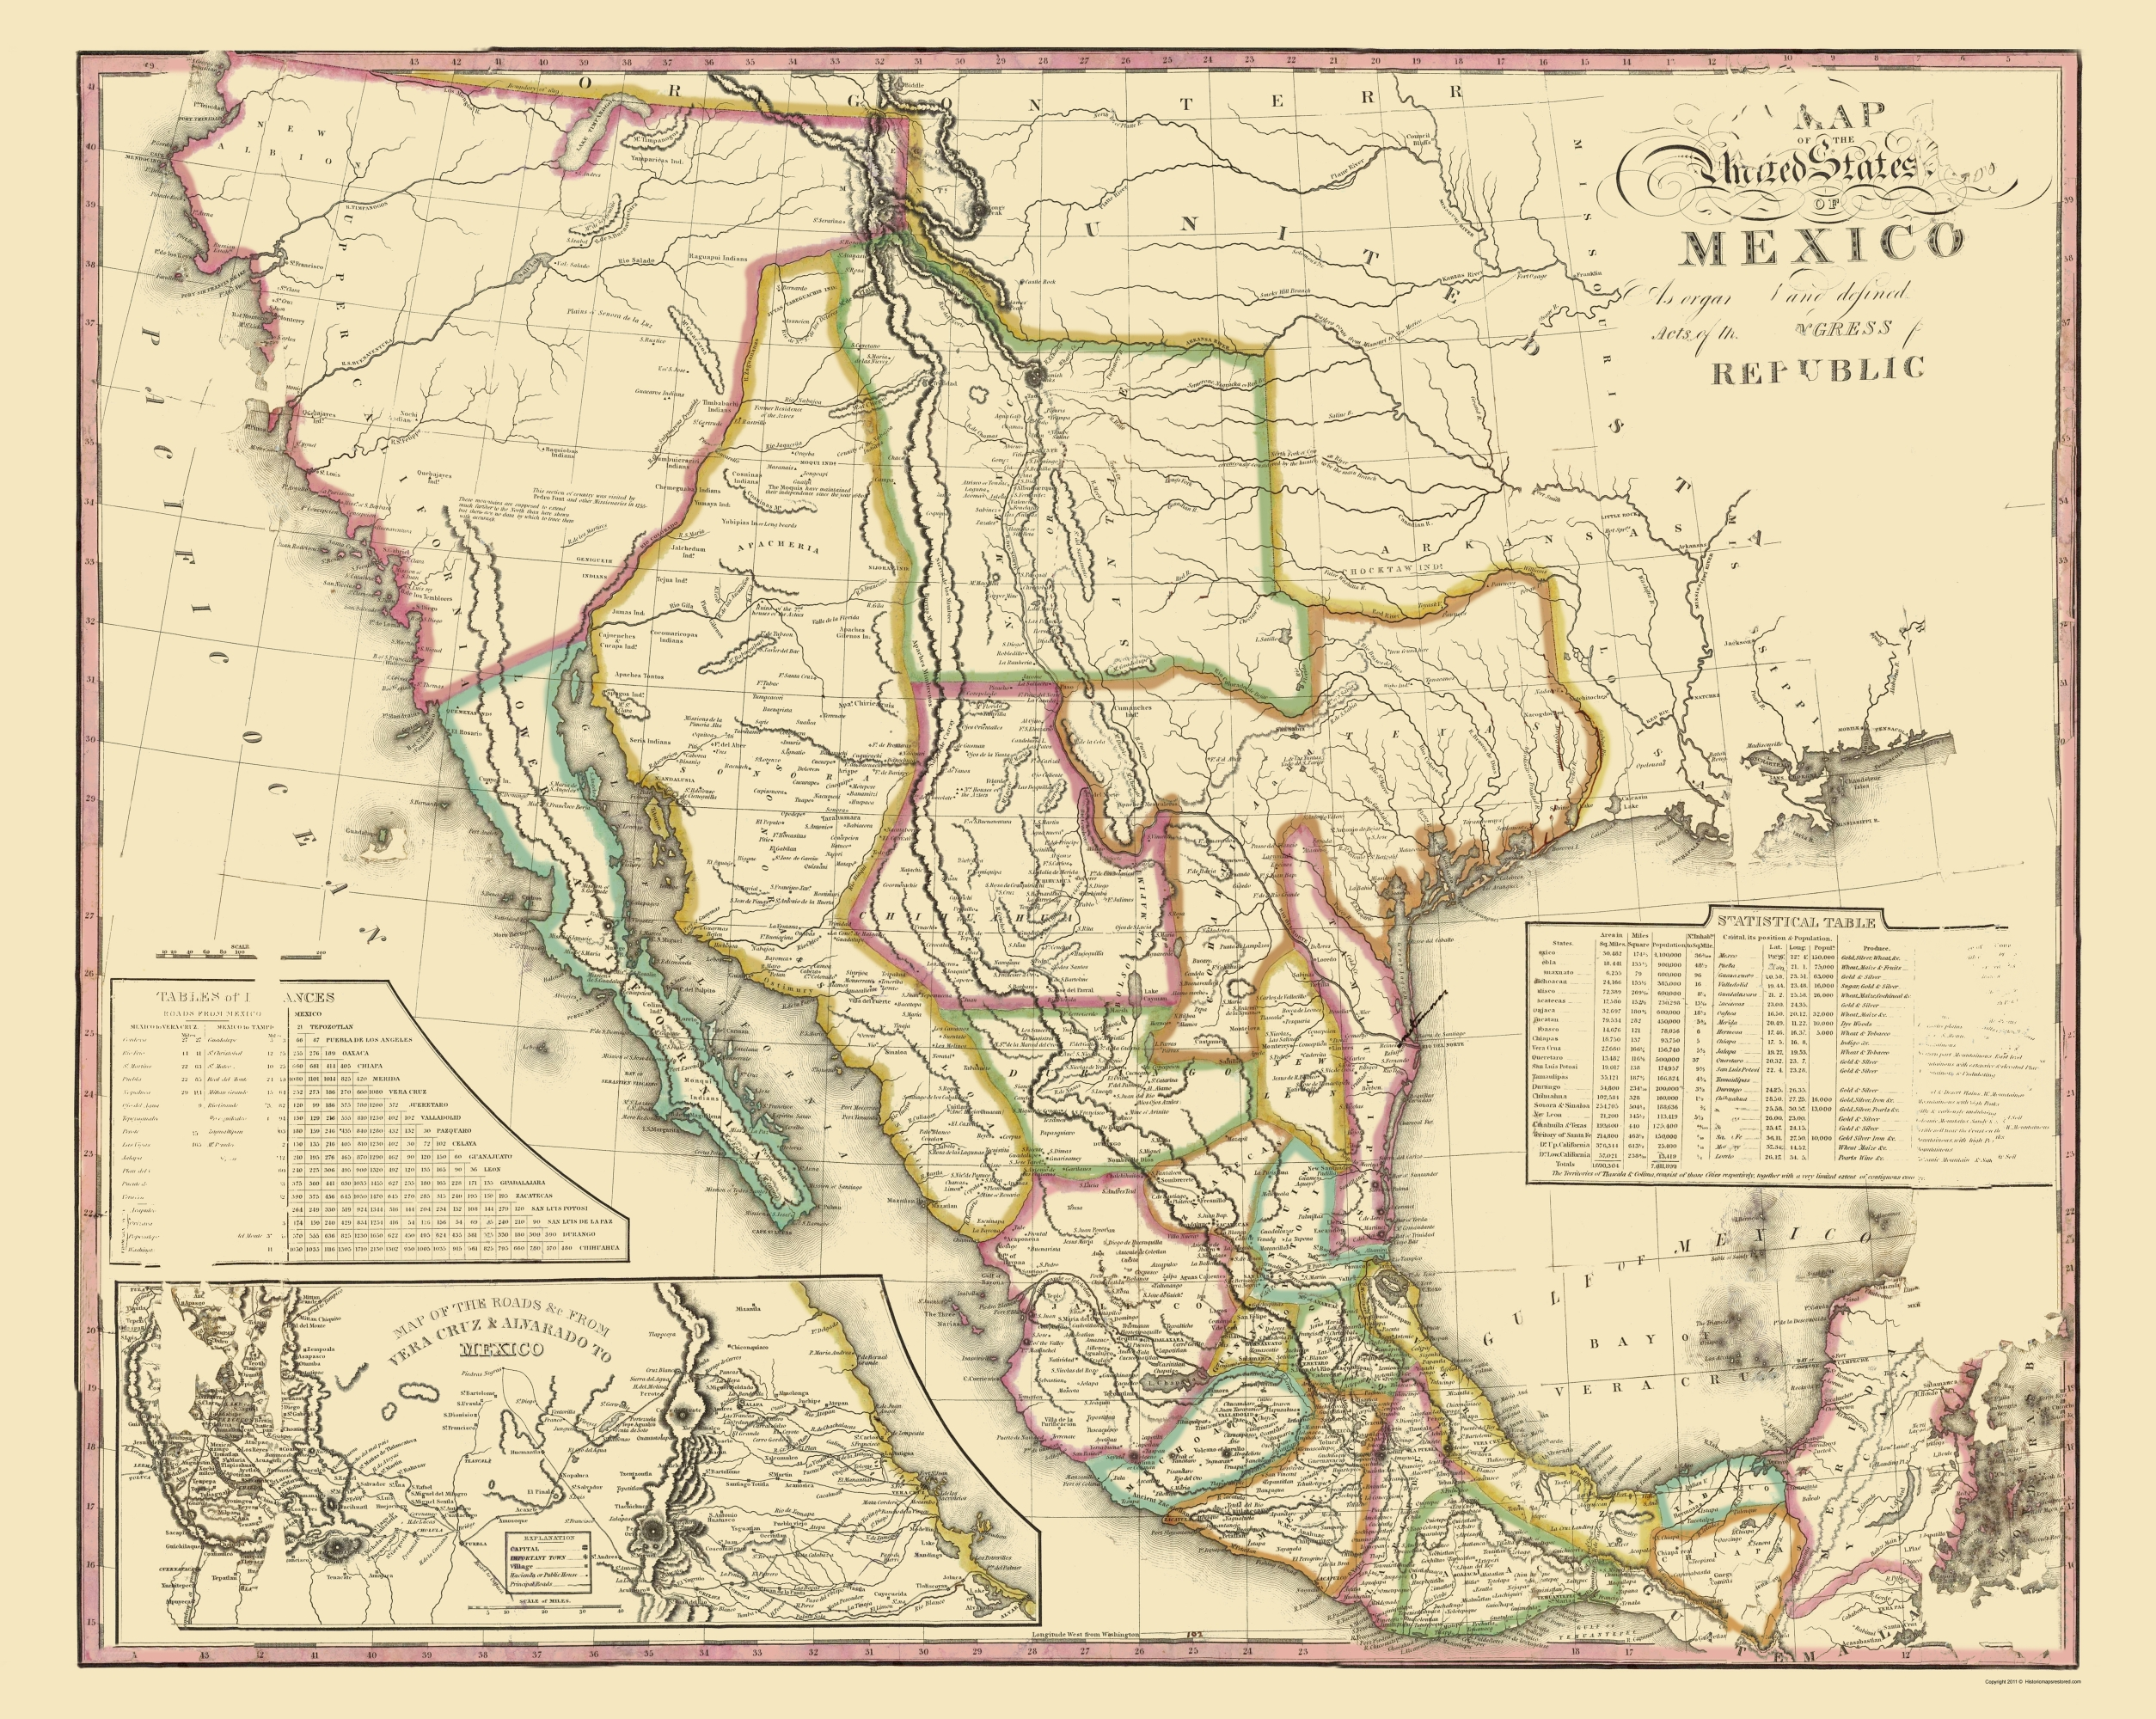 Old Mexico Map - United States of Mexico - Tanner 1826 - 23 x 28.84